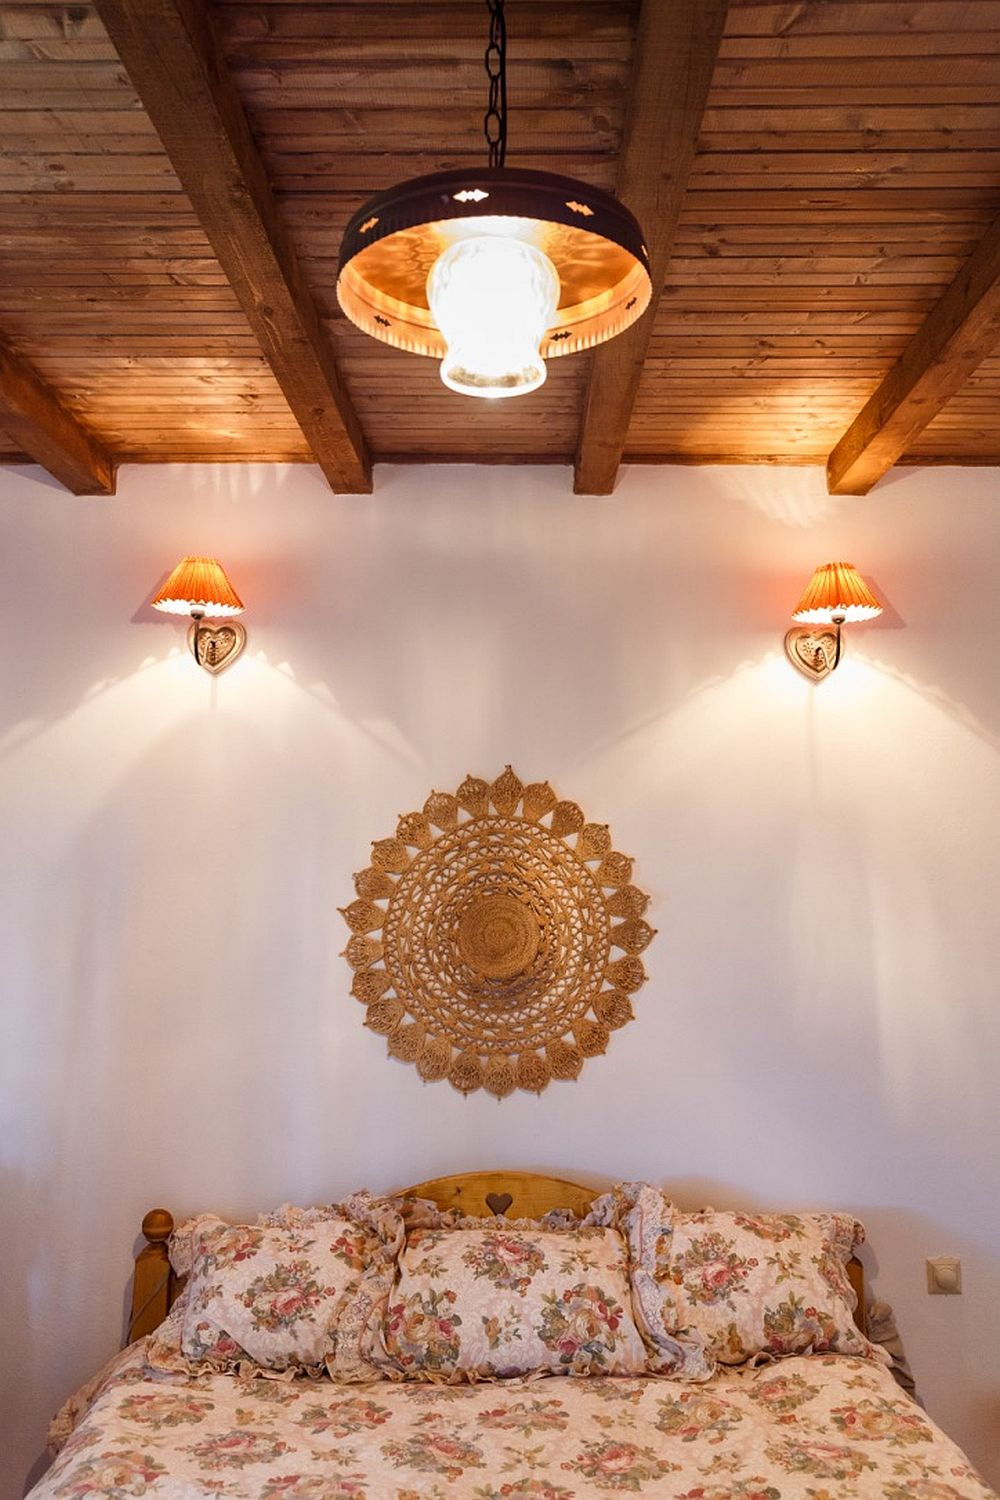 Look at this wooden bed with a carved heart, so cute